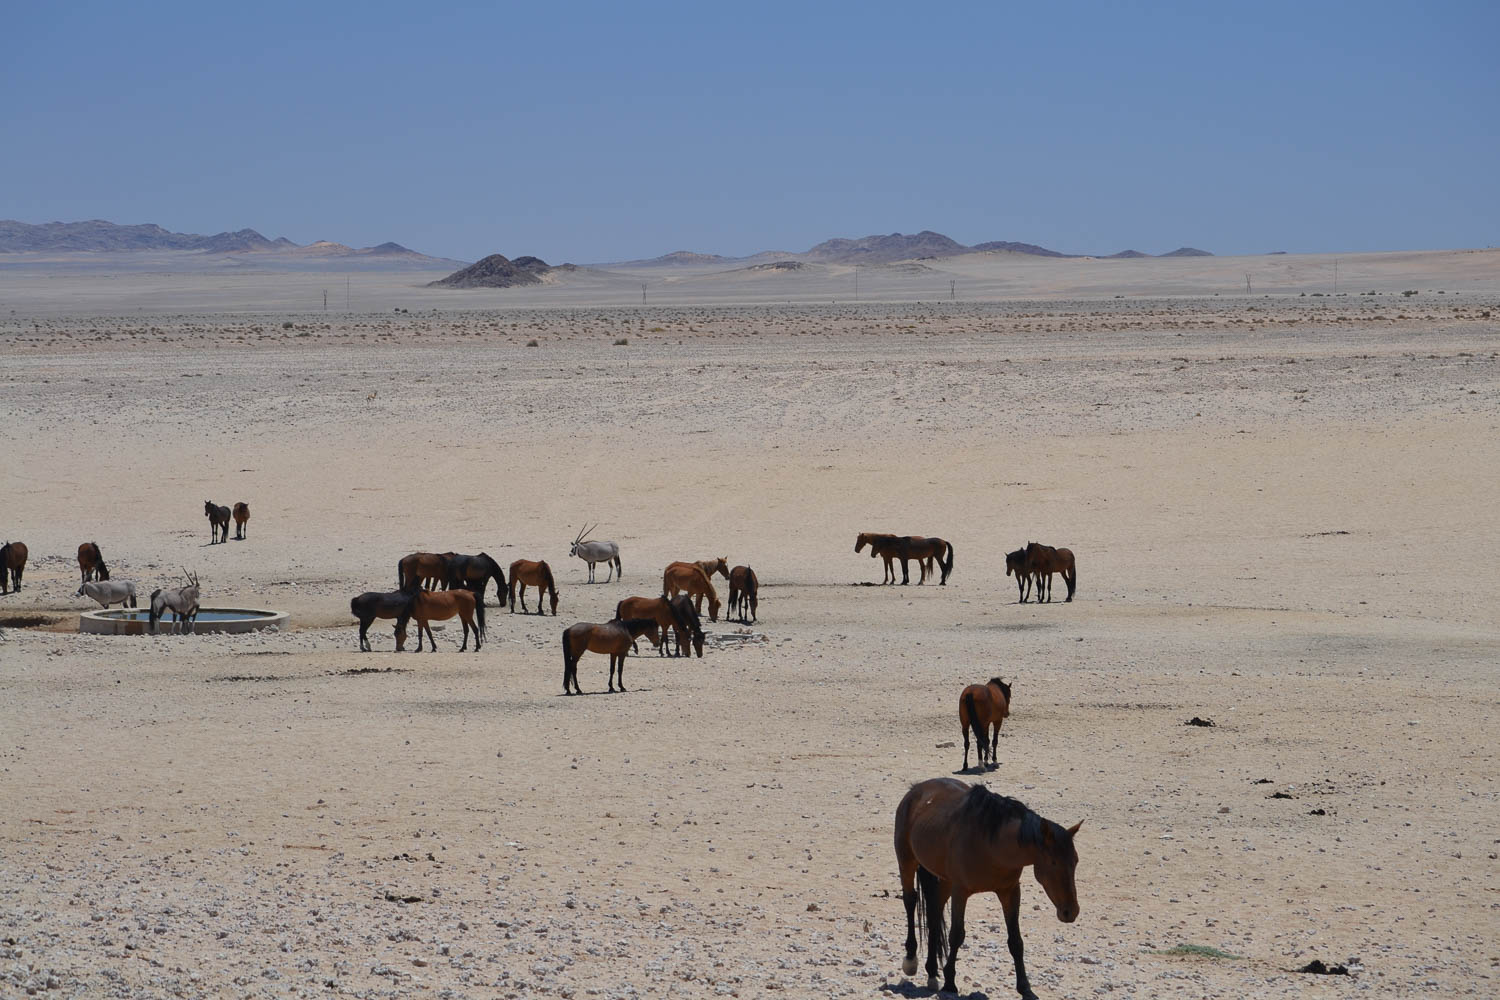 Overland 4x4 tours of Namibia